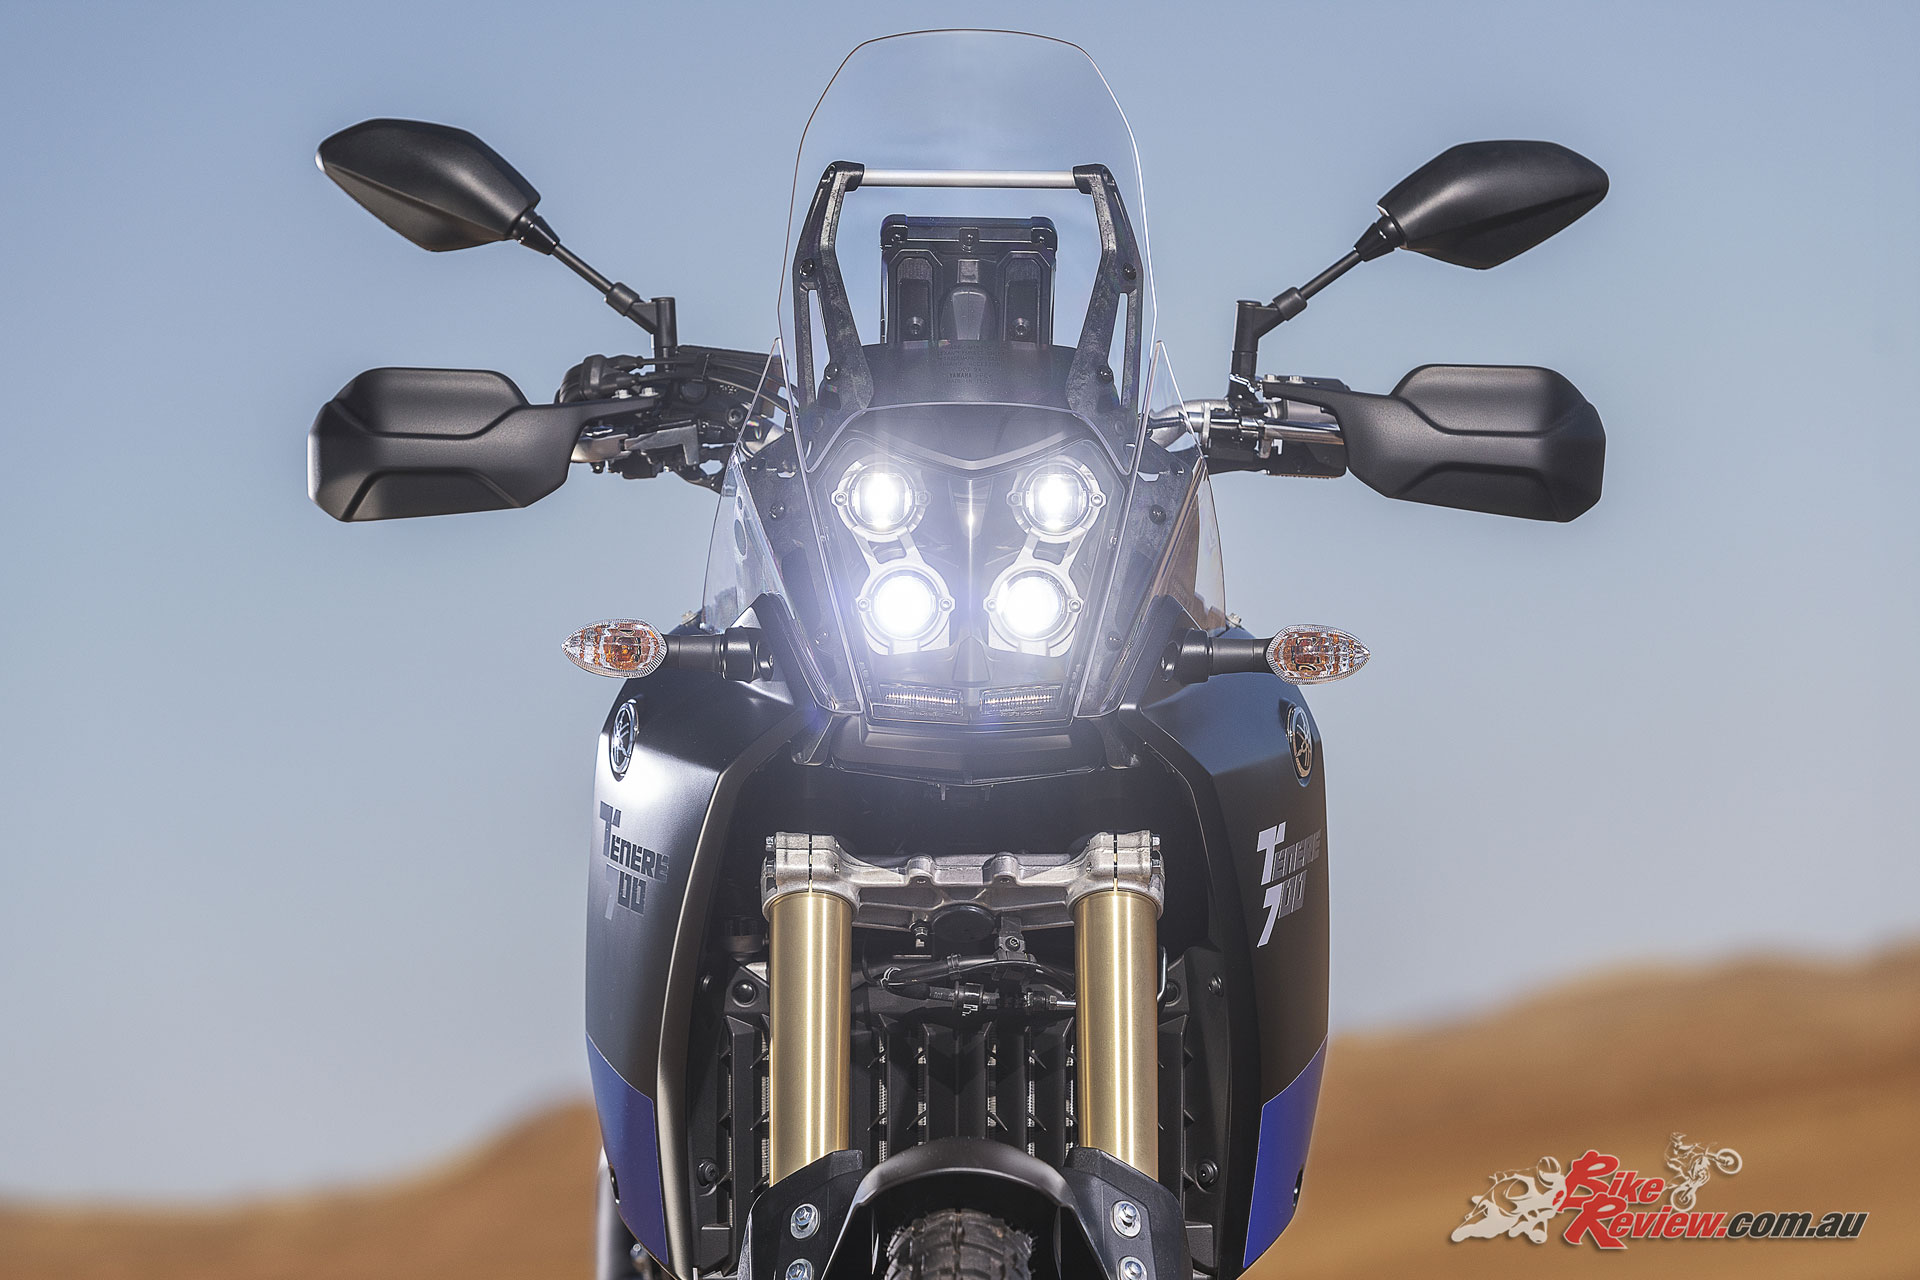 2019 Yamaha Tenere 700 - LED 2+2 headlight